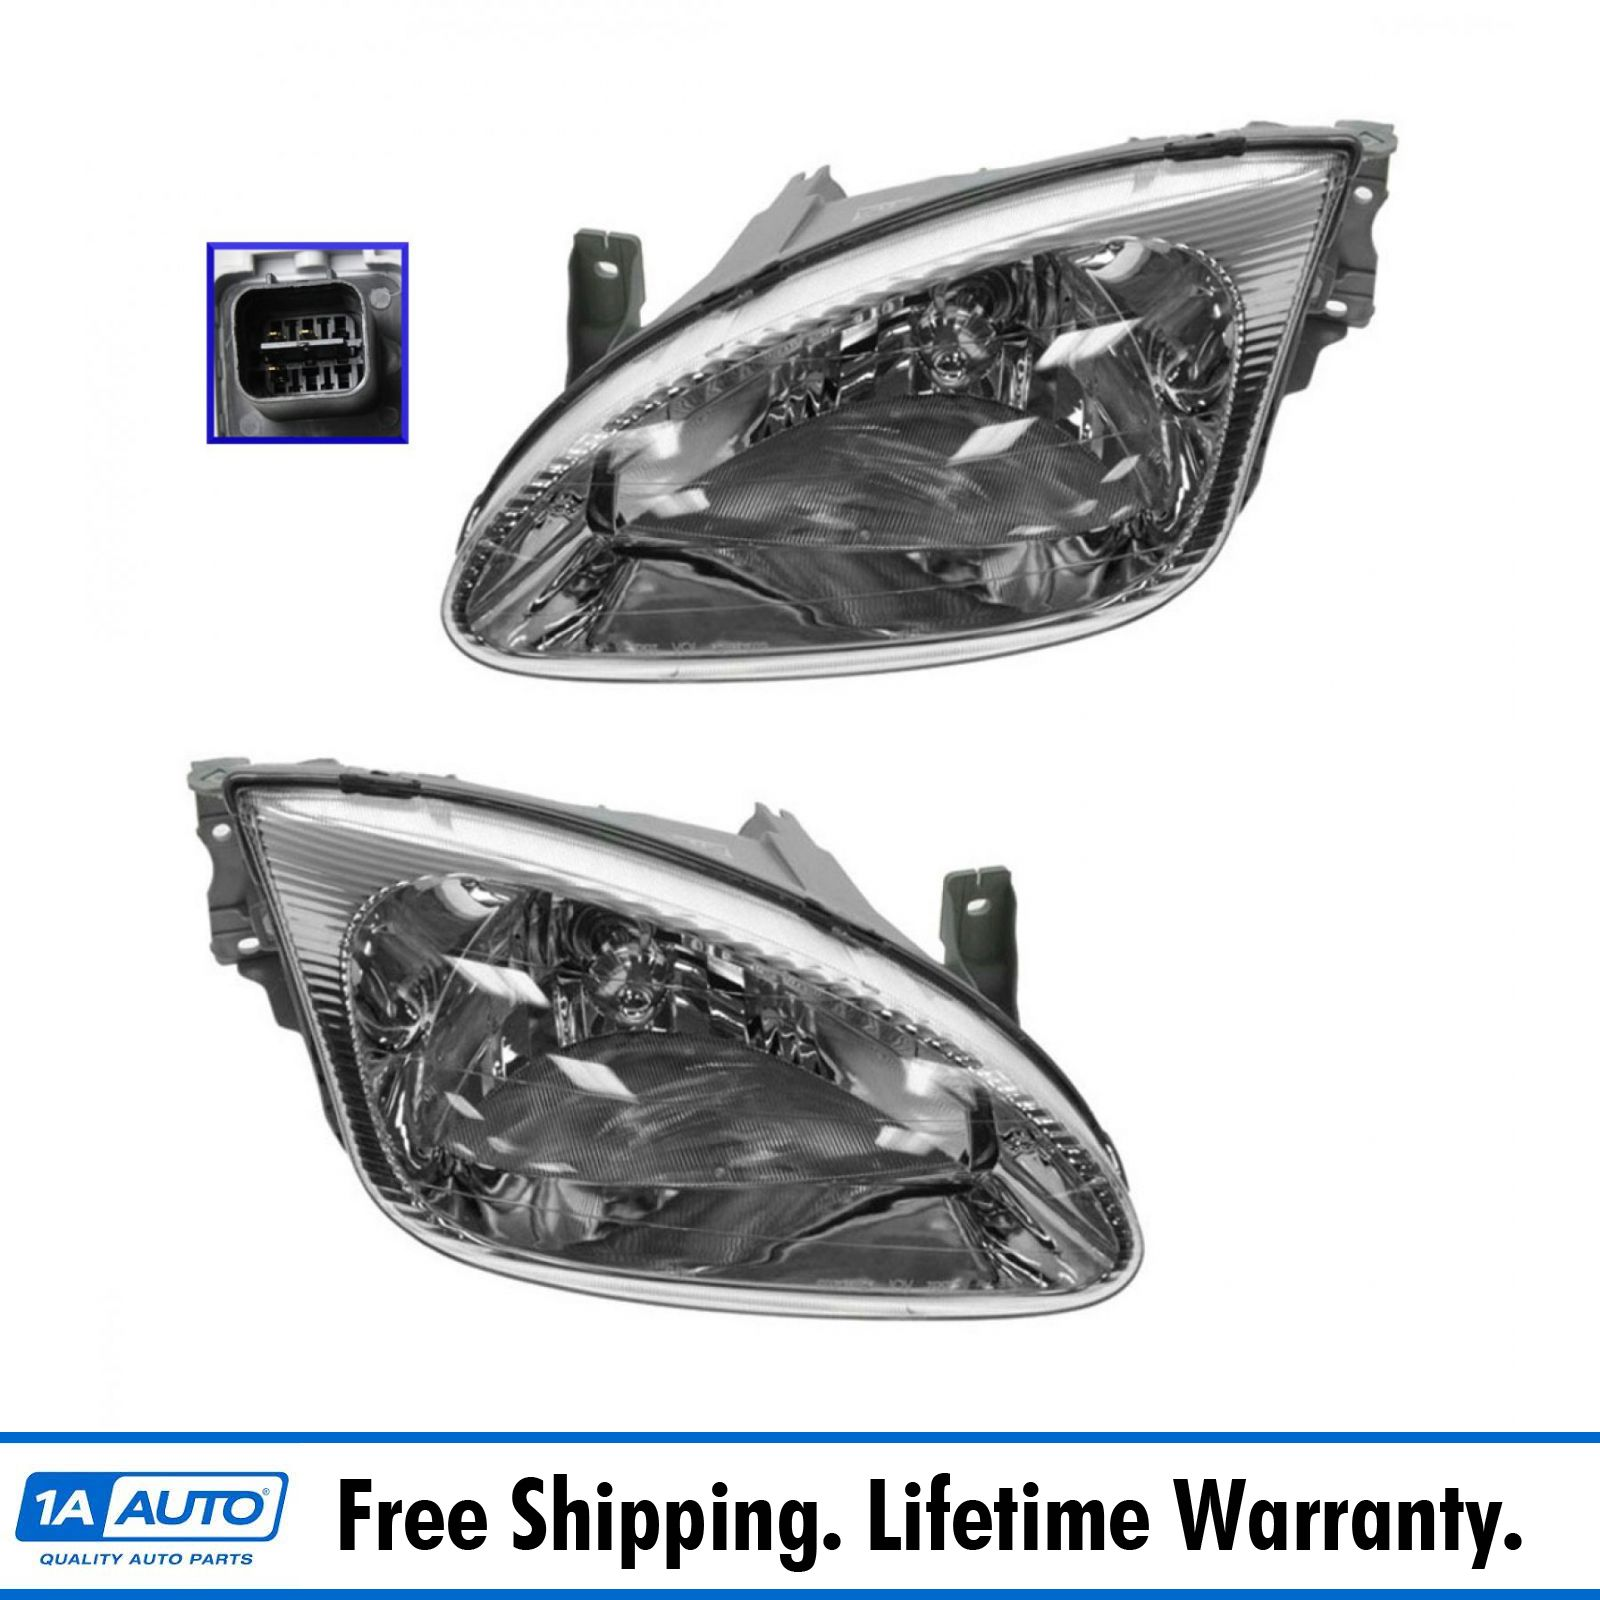 Headlights Headlamps for 99-00 Hyundai Elantra Right Side Only